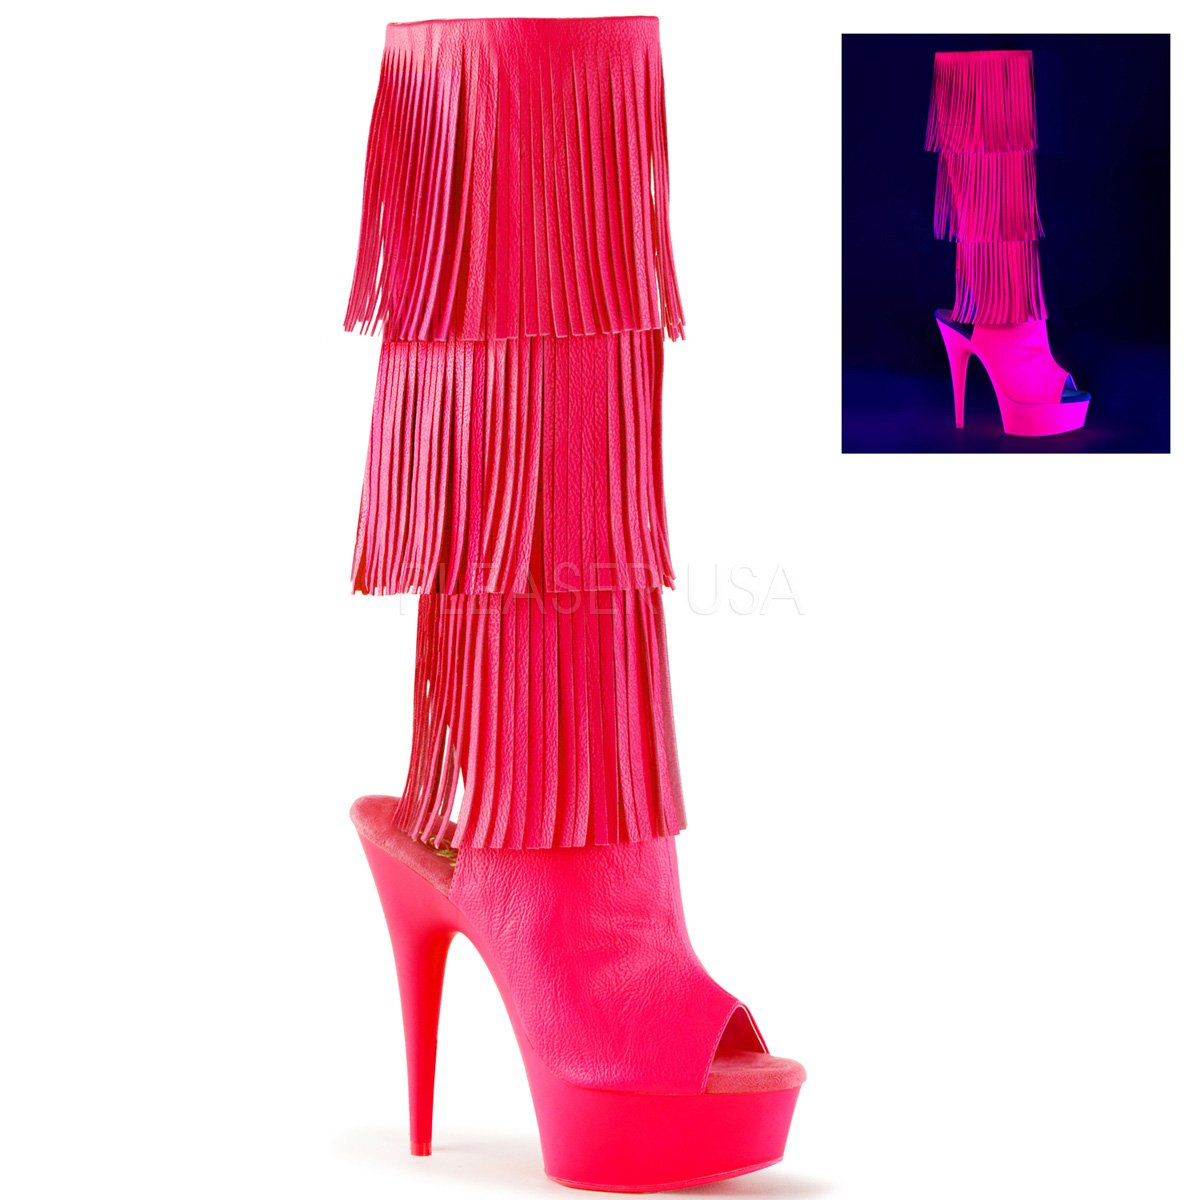 Pleaser Pink Women's Del2019-3/Bpu/M Boot B01ABTB1I4 7 B(M) US|Neon Hot Pink Pleaser Faux, Neon Hot Pink 0b4396